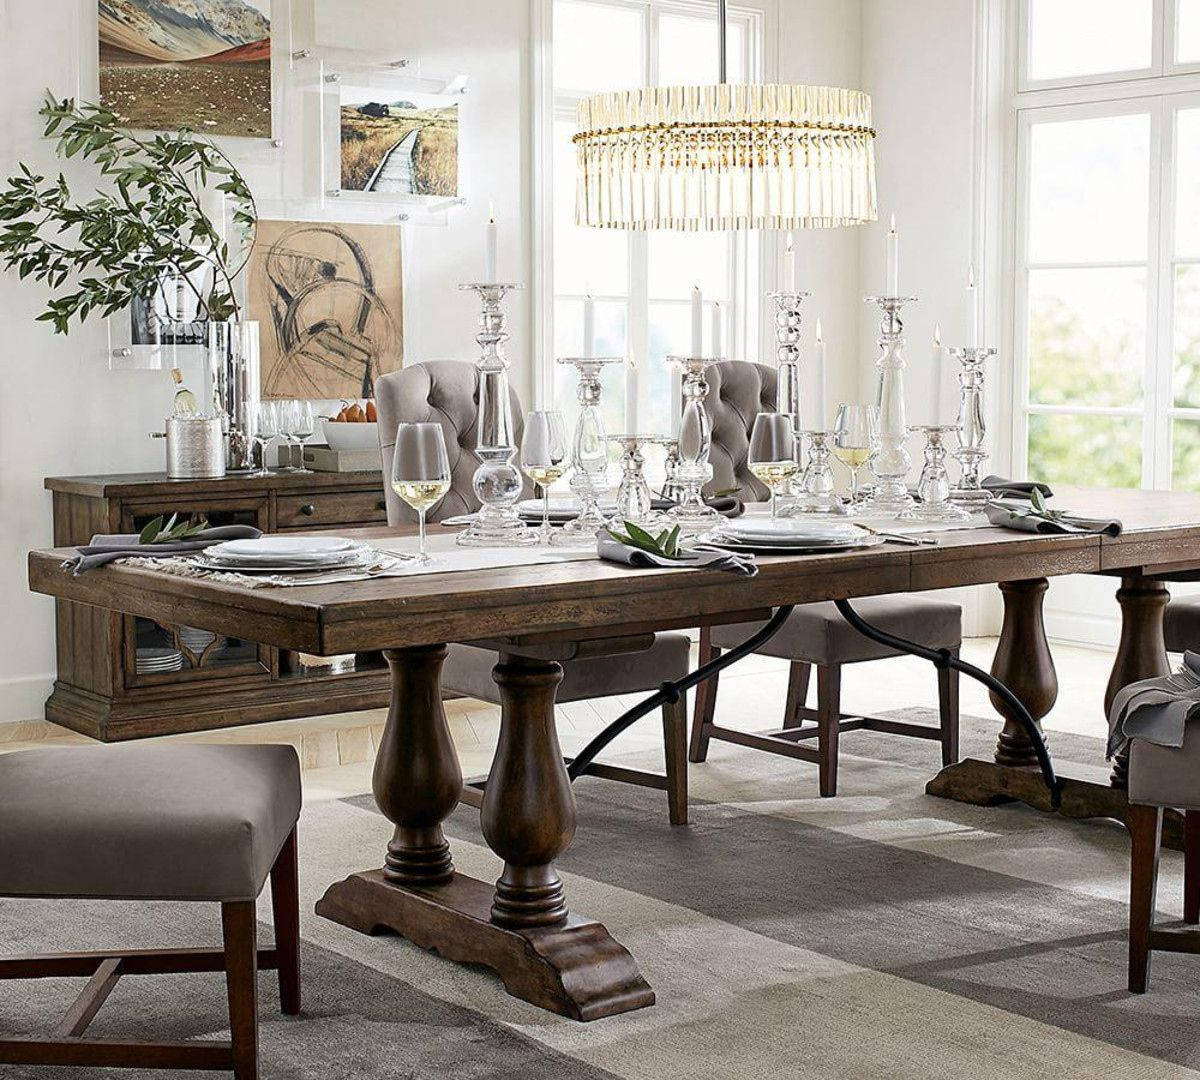 55 pottery barn dining table best paint for interior walls check more at http www soarority com pottery barn dining table